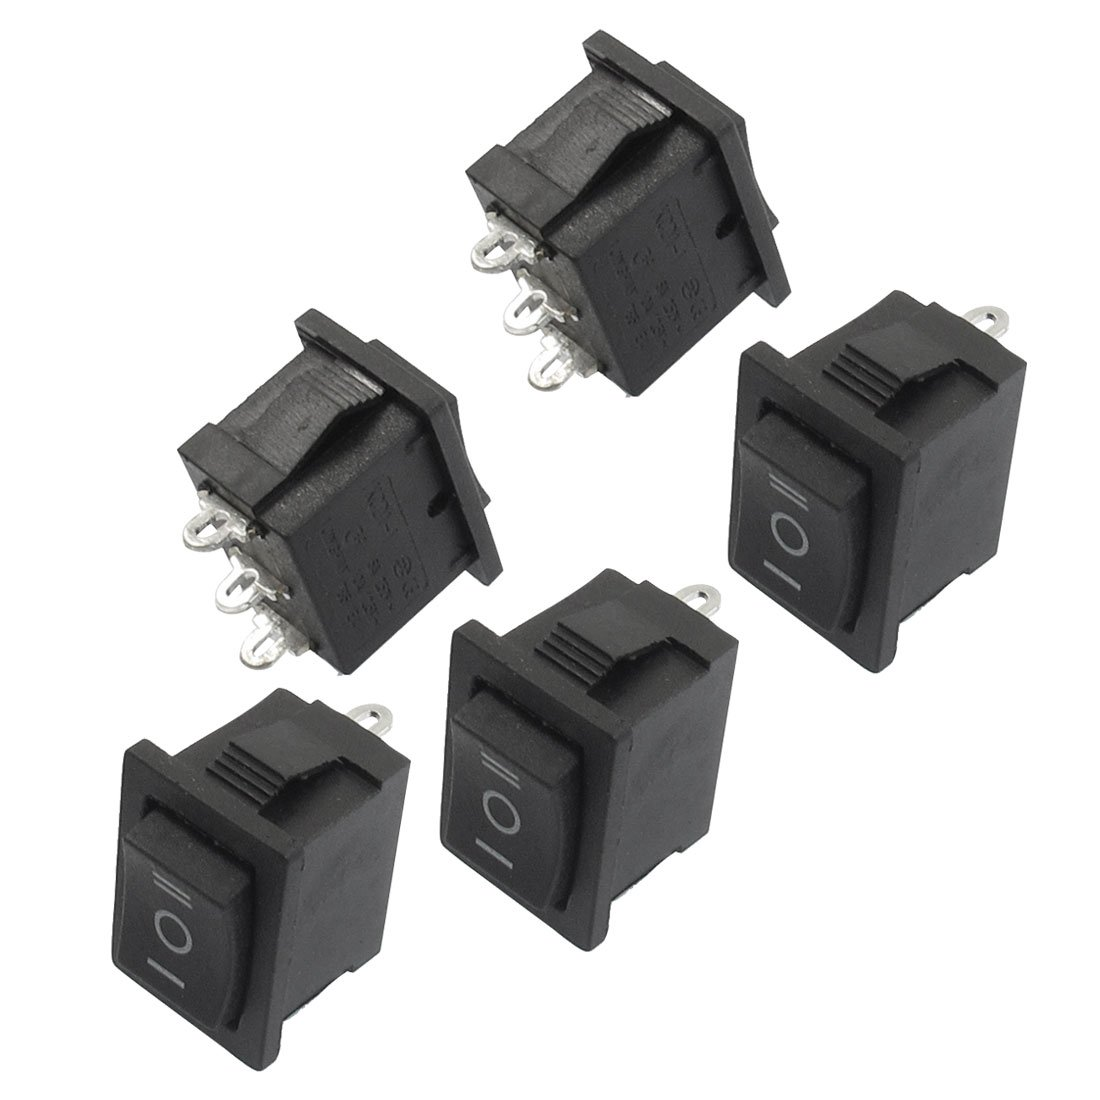 Promotion! 5 pcs SPDT On/Off/On Mini Black 3 Pin Rocker Switch AC 6A/250V 10A/125V 5pcs kcd1 perforate 21 x 15 mm 6 pin 2 positions boat rocker switch on off power switch 6a 250v 10a 125v ac new hot